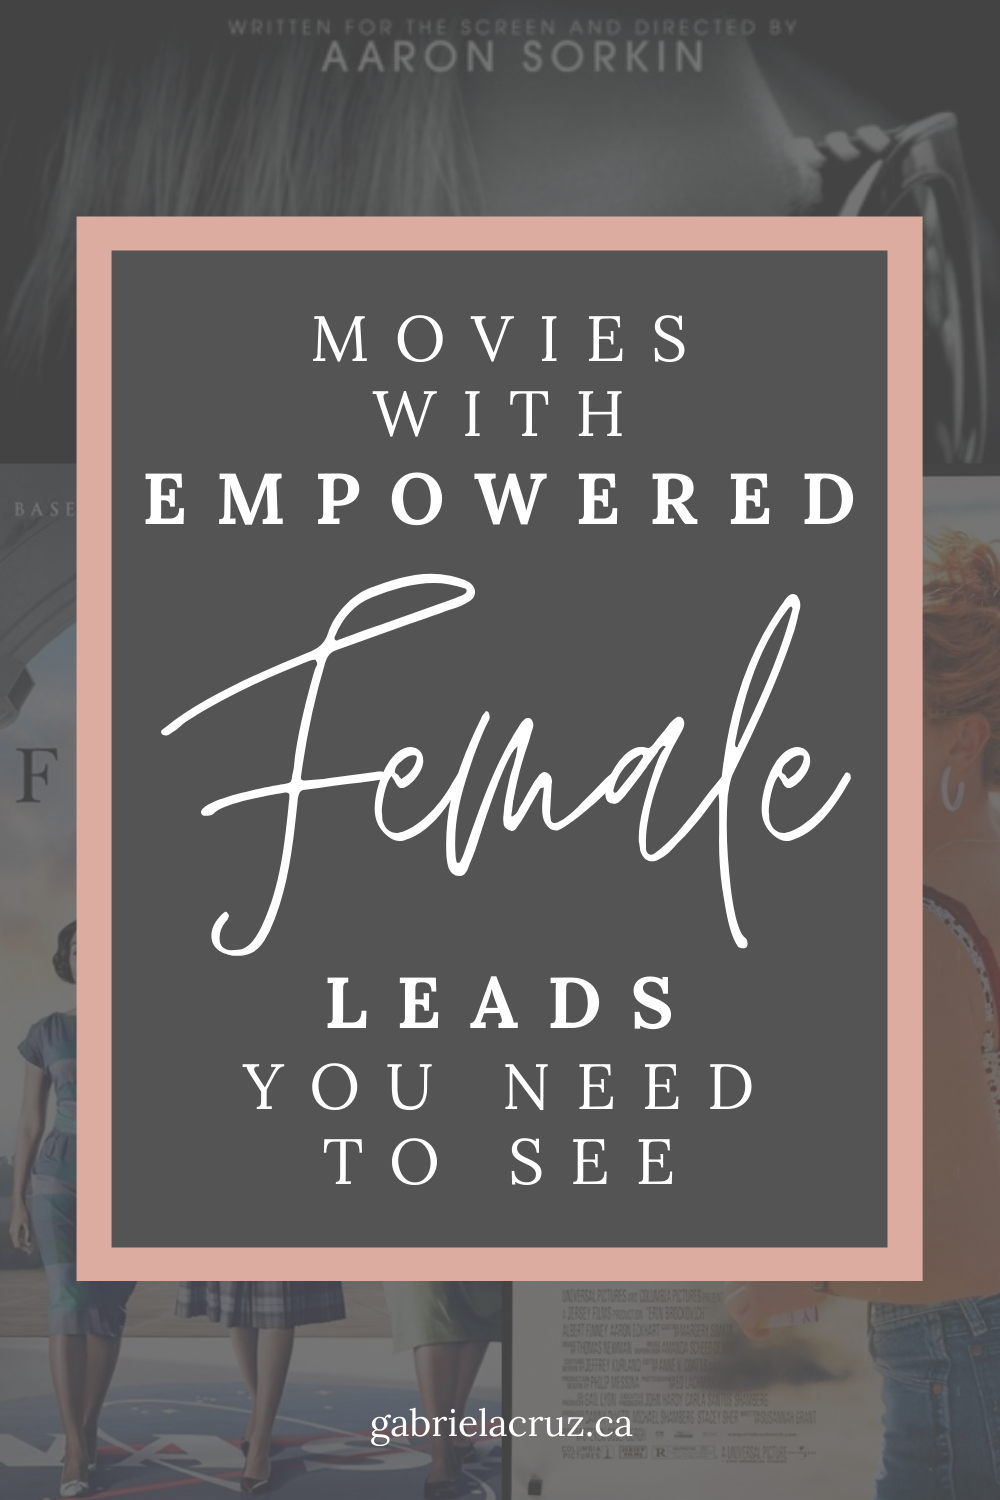 Movies with empowered female leads you need to see | #empowerment #femaleempowerment #empoweredwomen